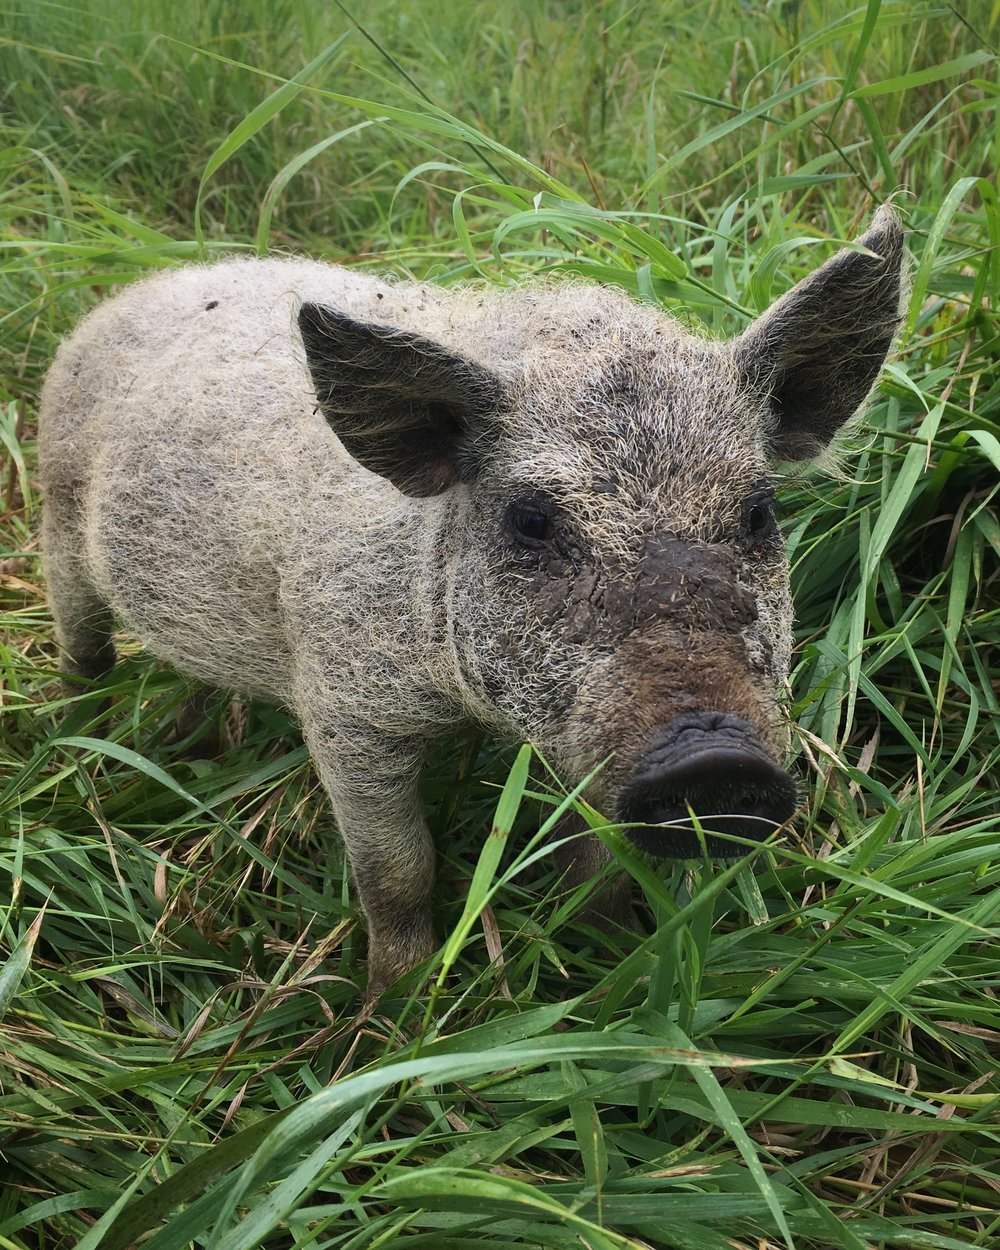 Loving life in a fresh pasture, and her tummy is feeling better now that the nasty roundworms are gone!